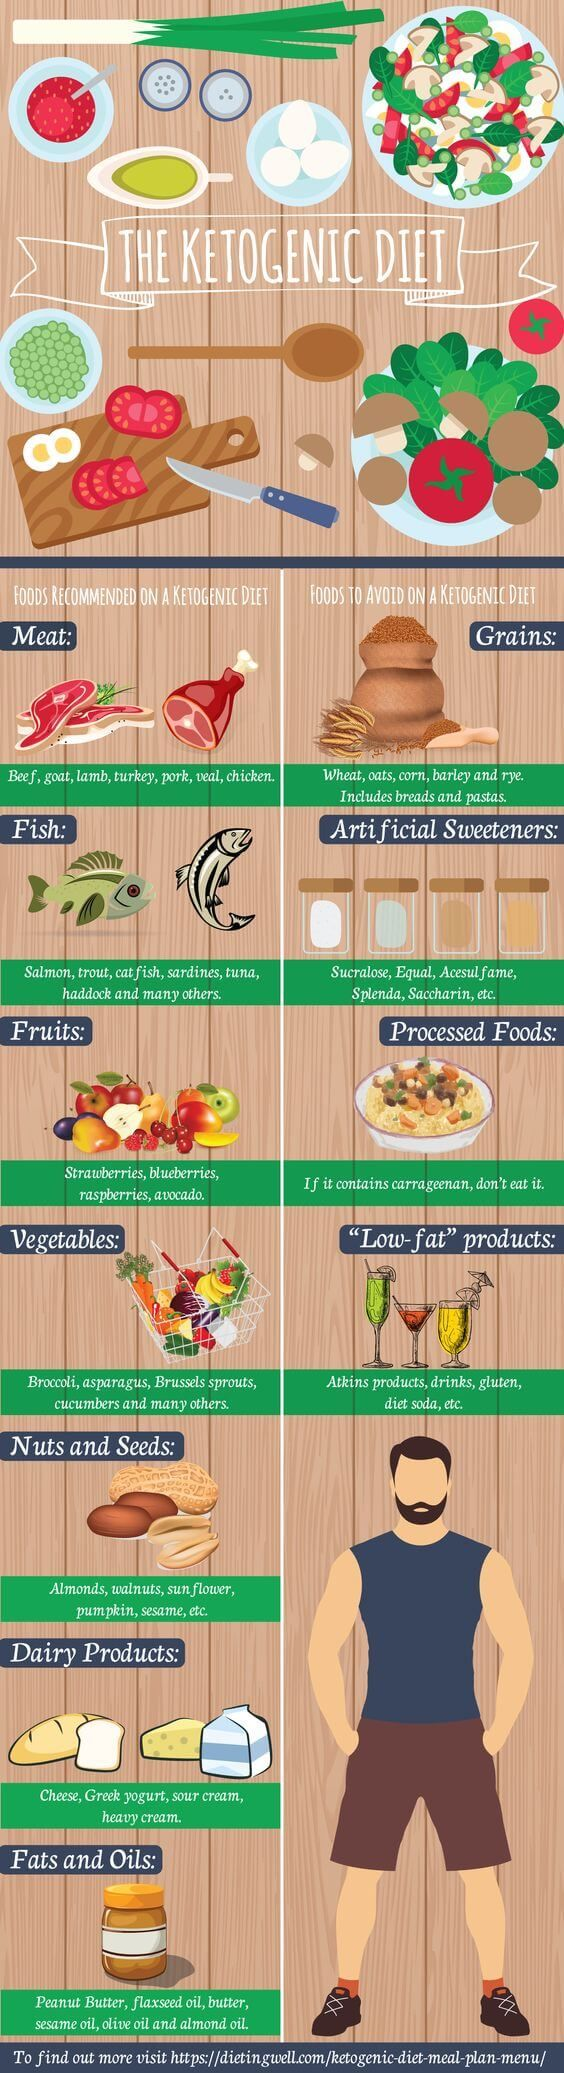 The Ultimate Ketogenic Diet Food List (What to Eat on The Keto Diet) (1)